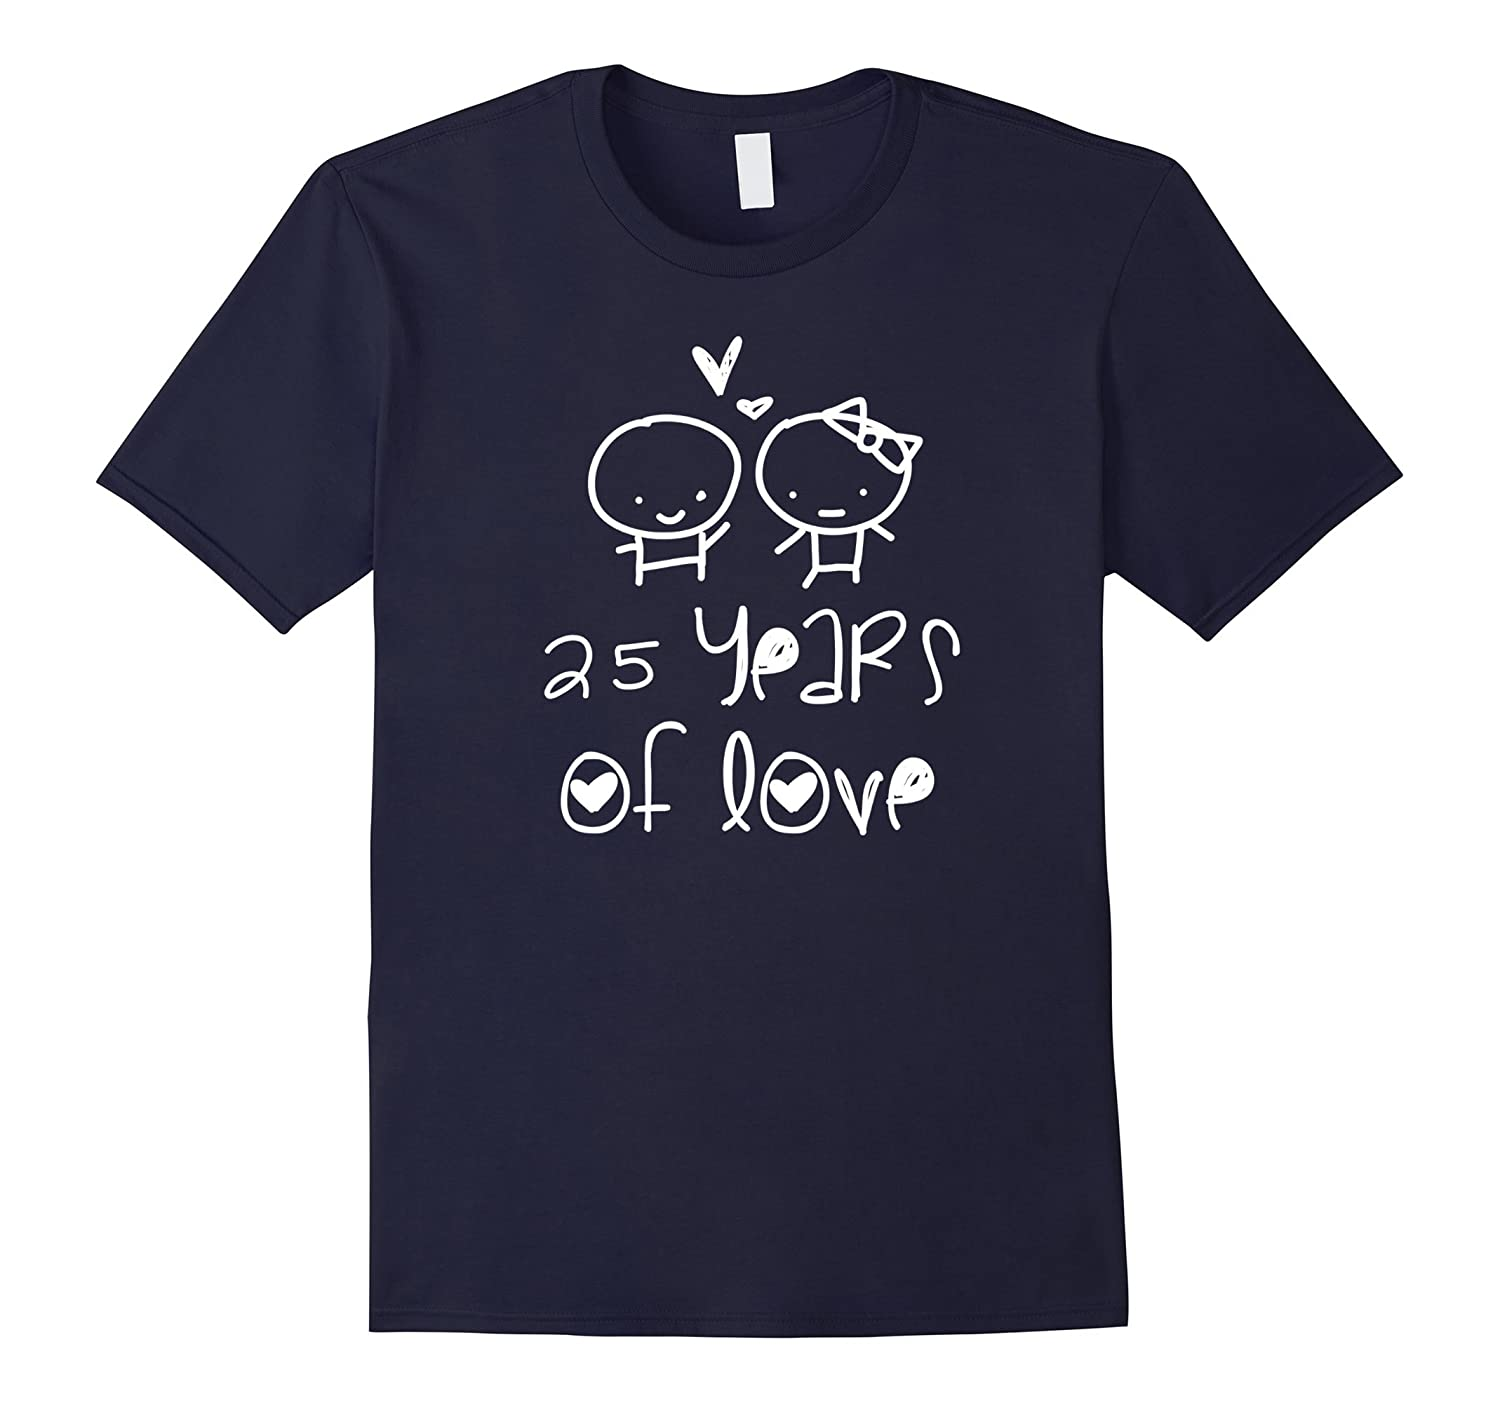 25 Years Of Love T-shirt. Silver Wedding Gifts Cute Graphic-T-Shirt